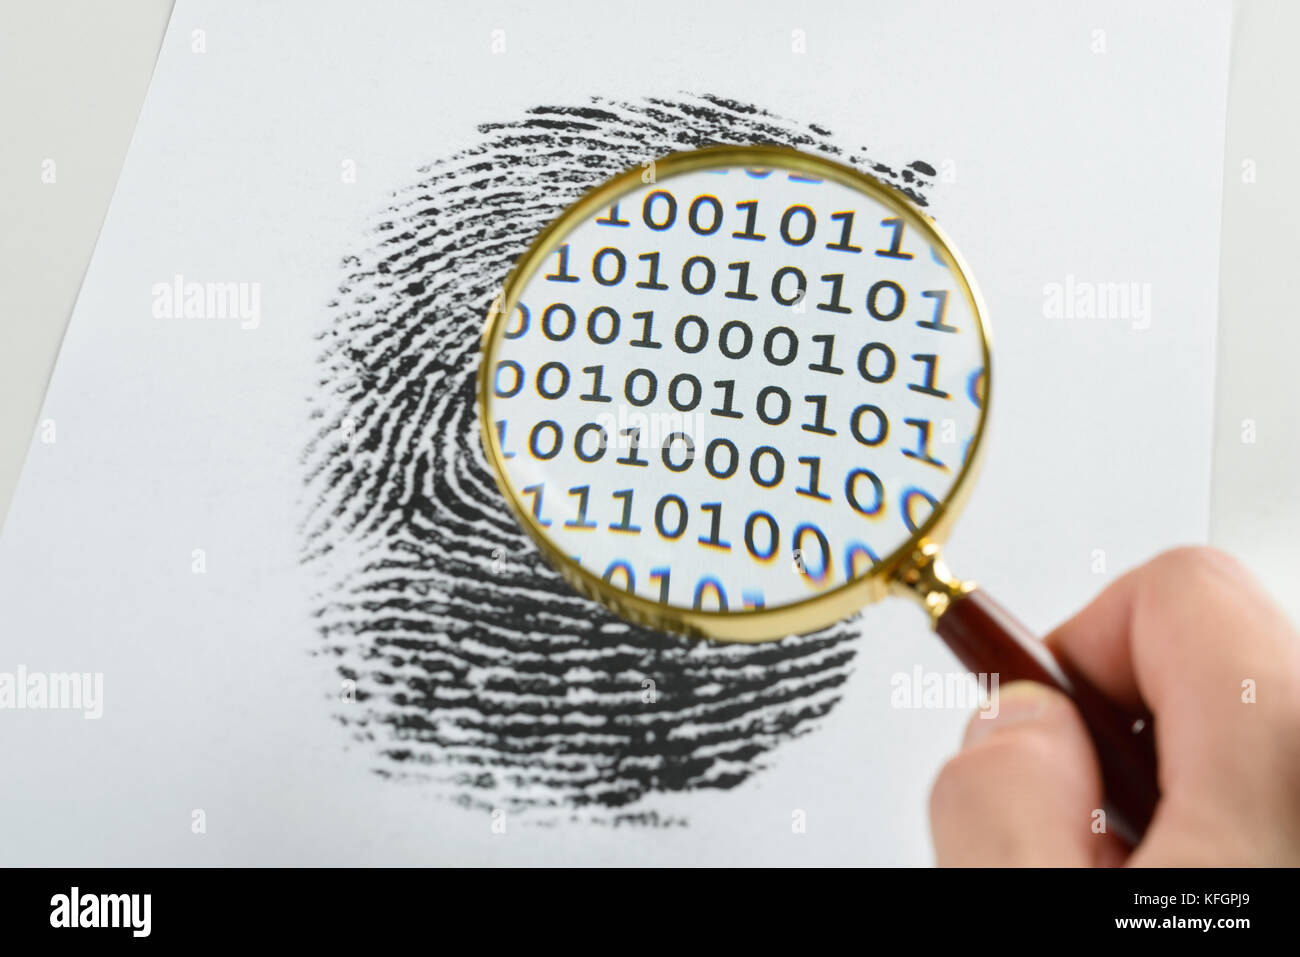 Person Hand With Magnifying Glass Over A Finger Print Revealing Binary Code Within The Print - Stock Image